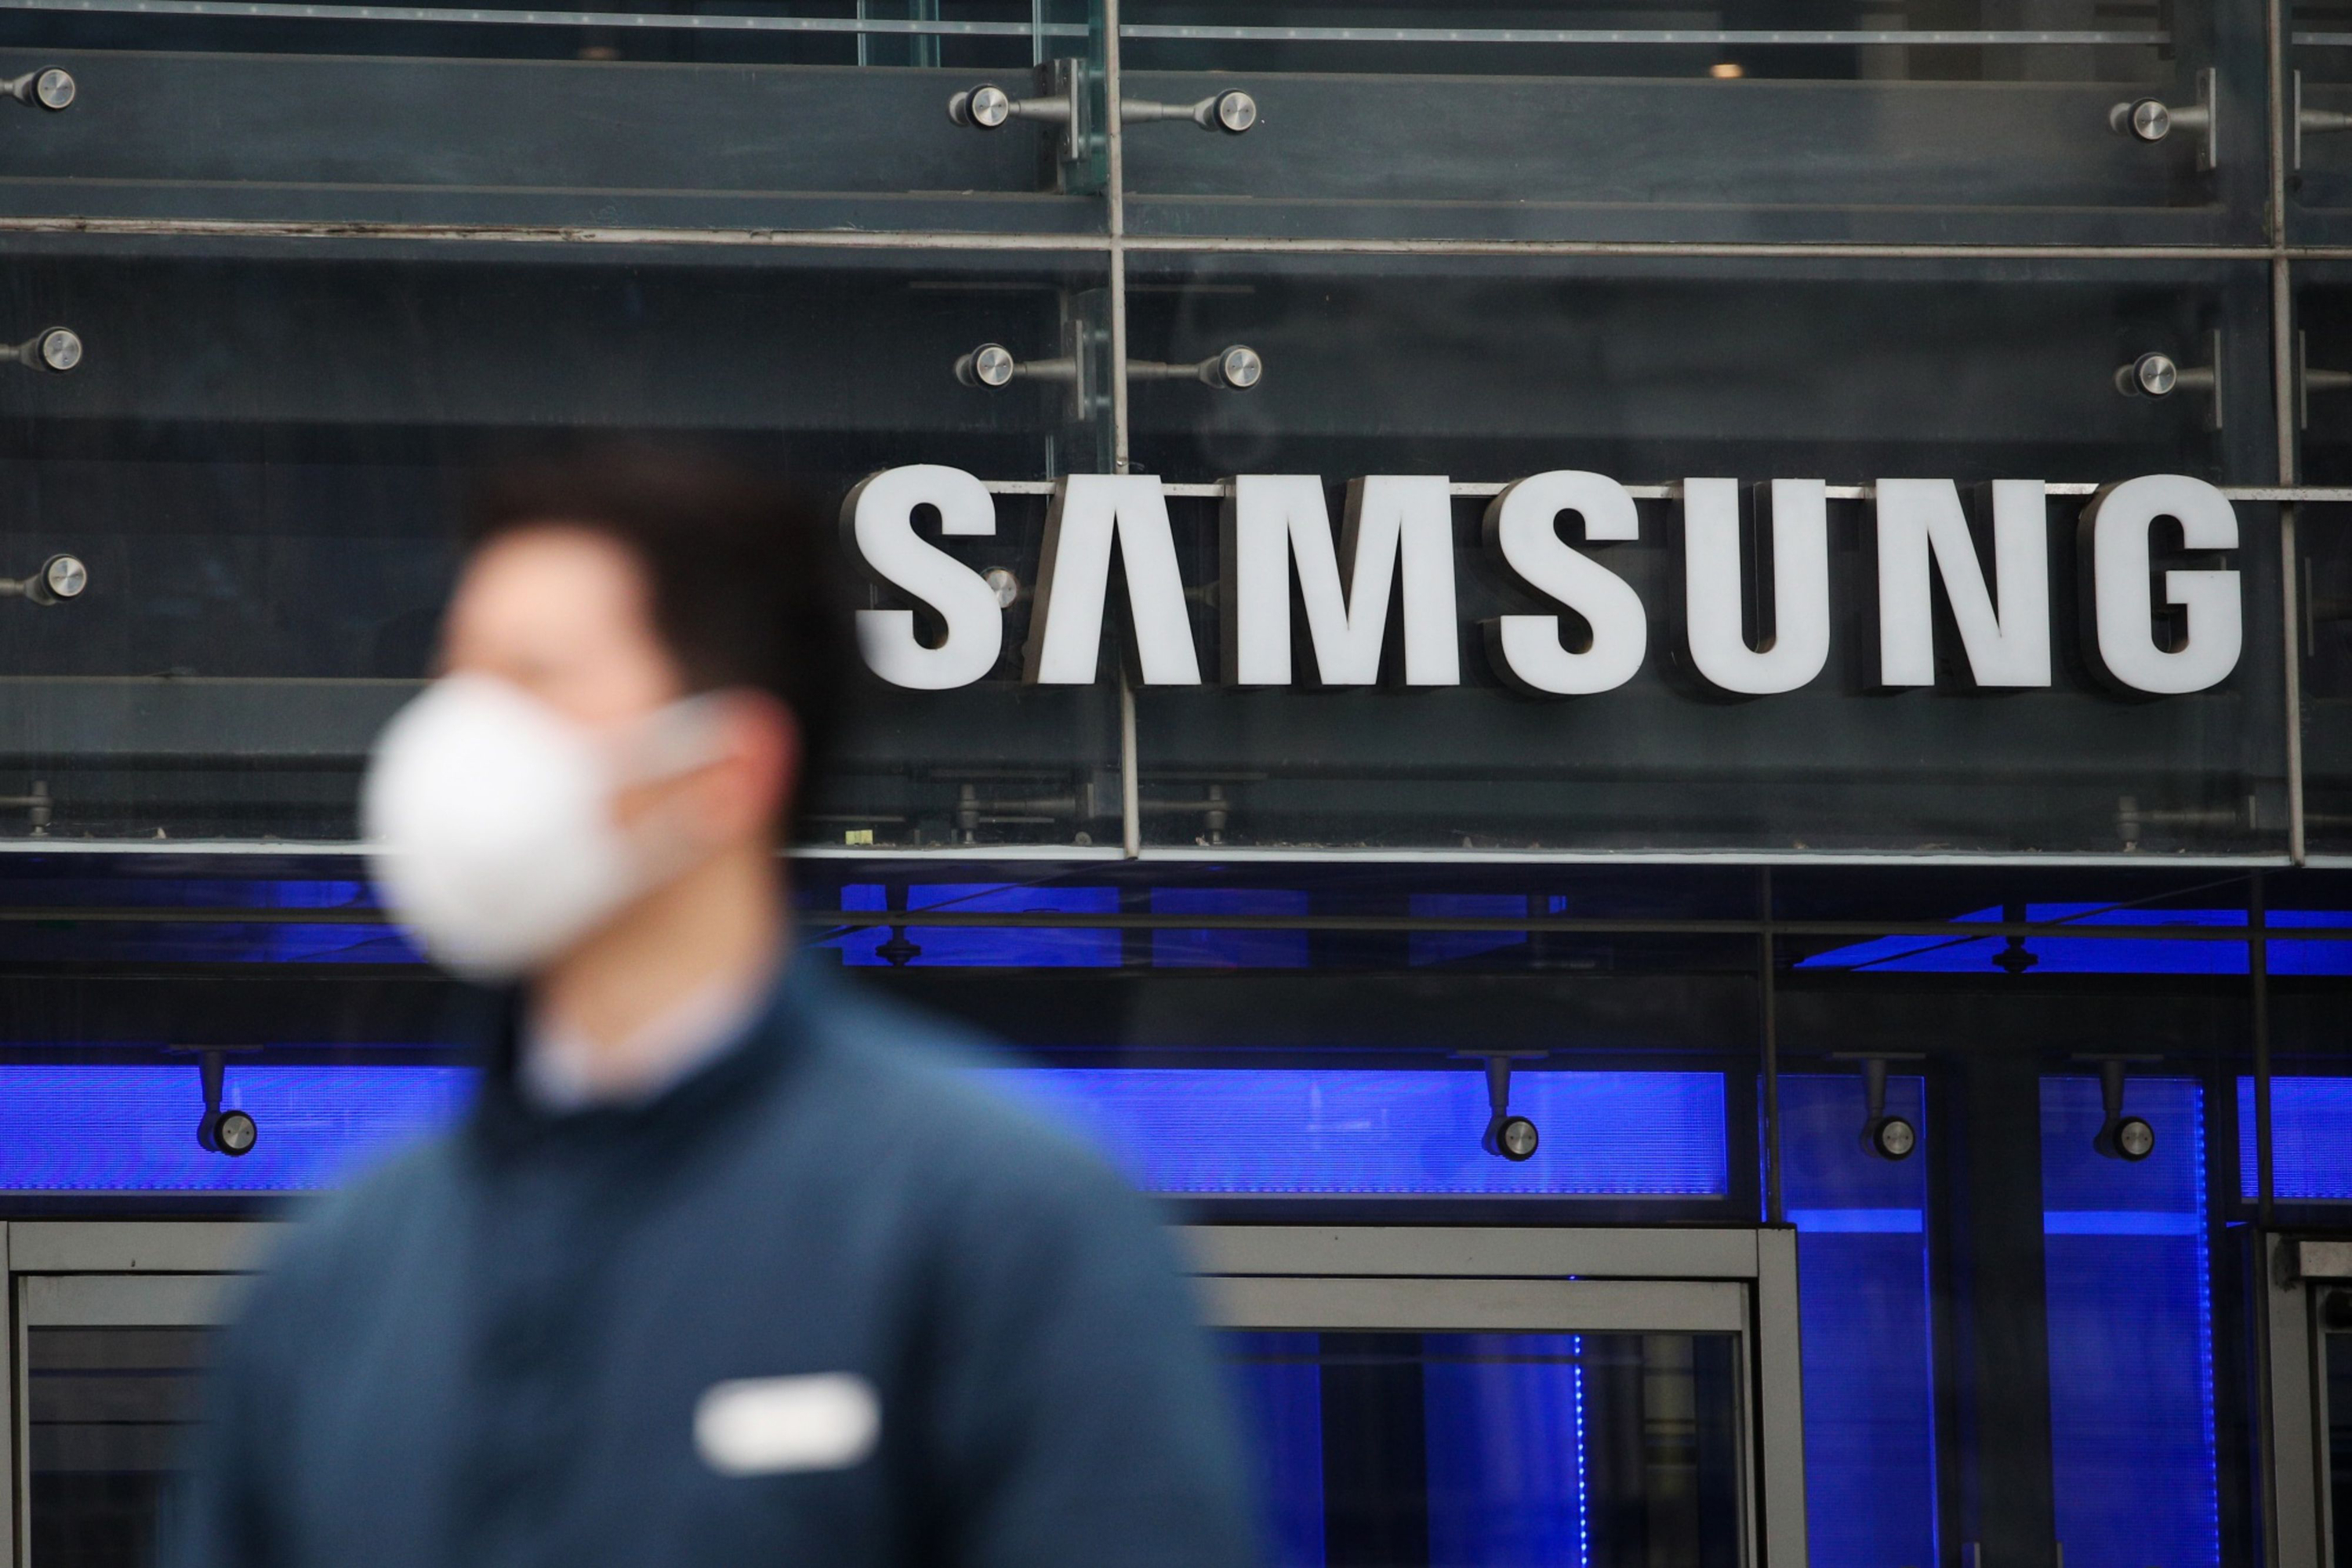 Samsung launches U.S. media and digital review